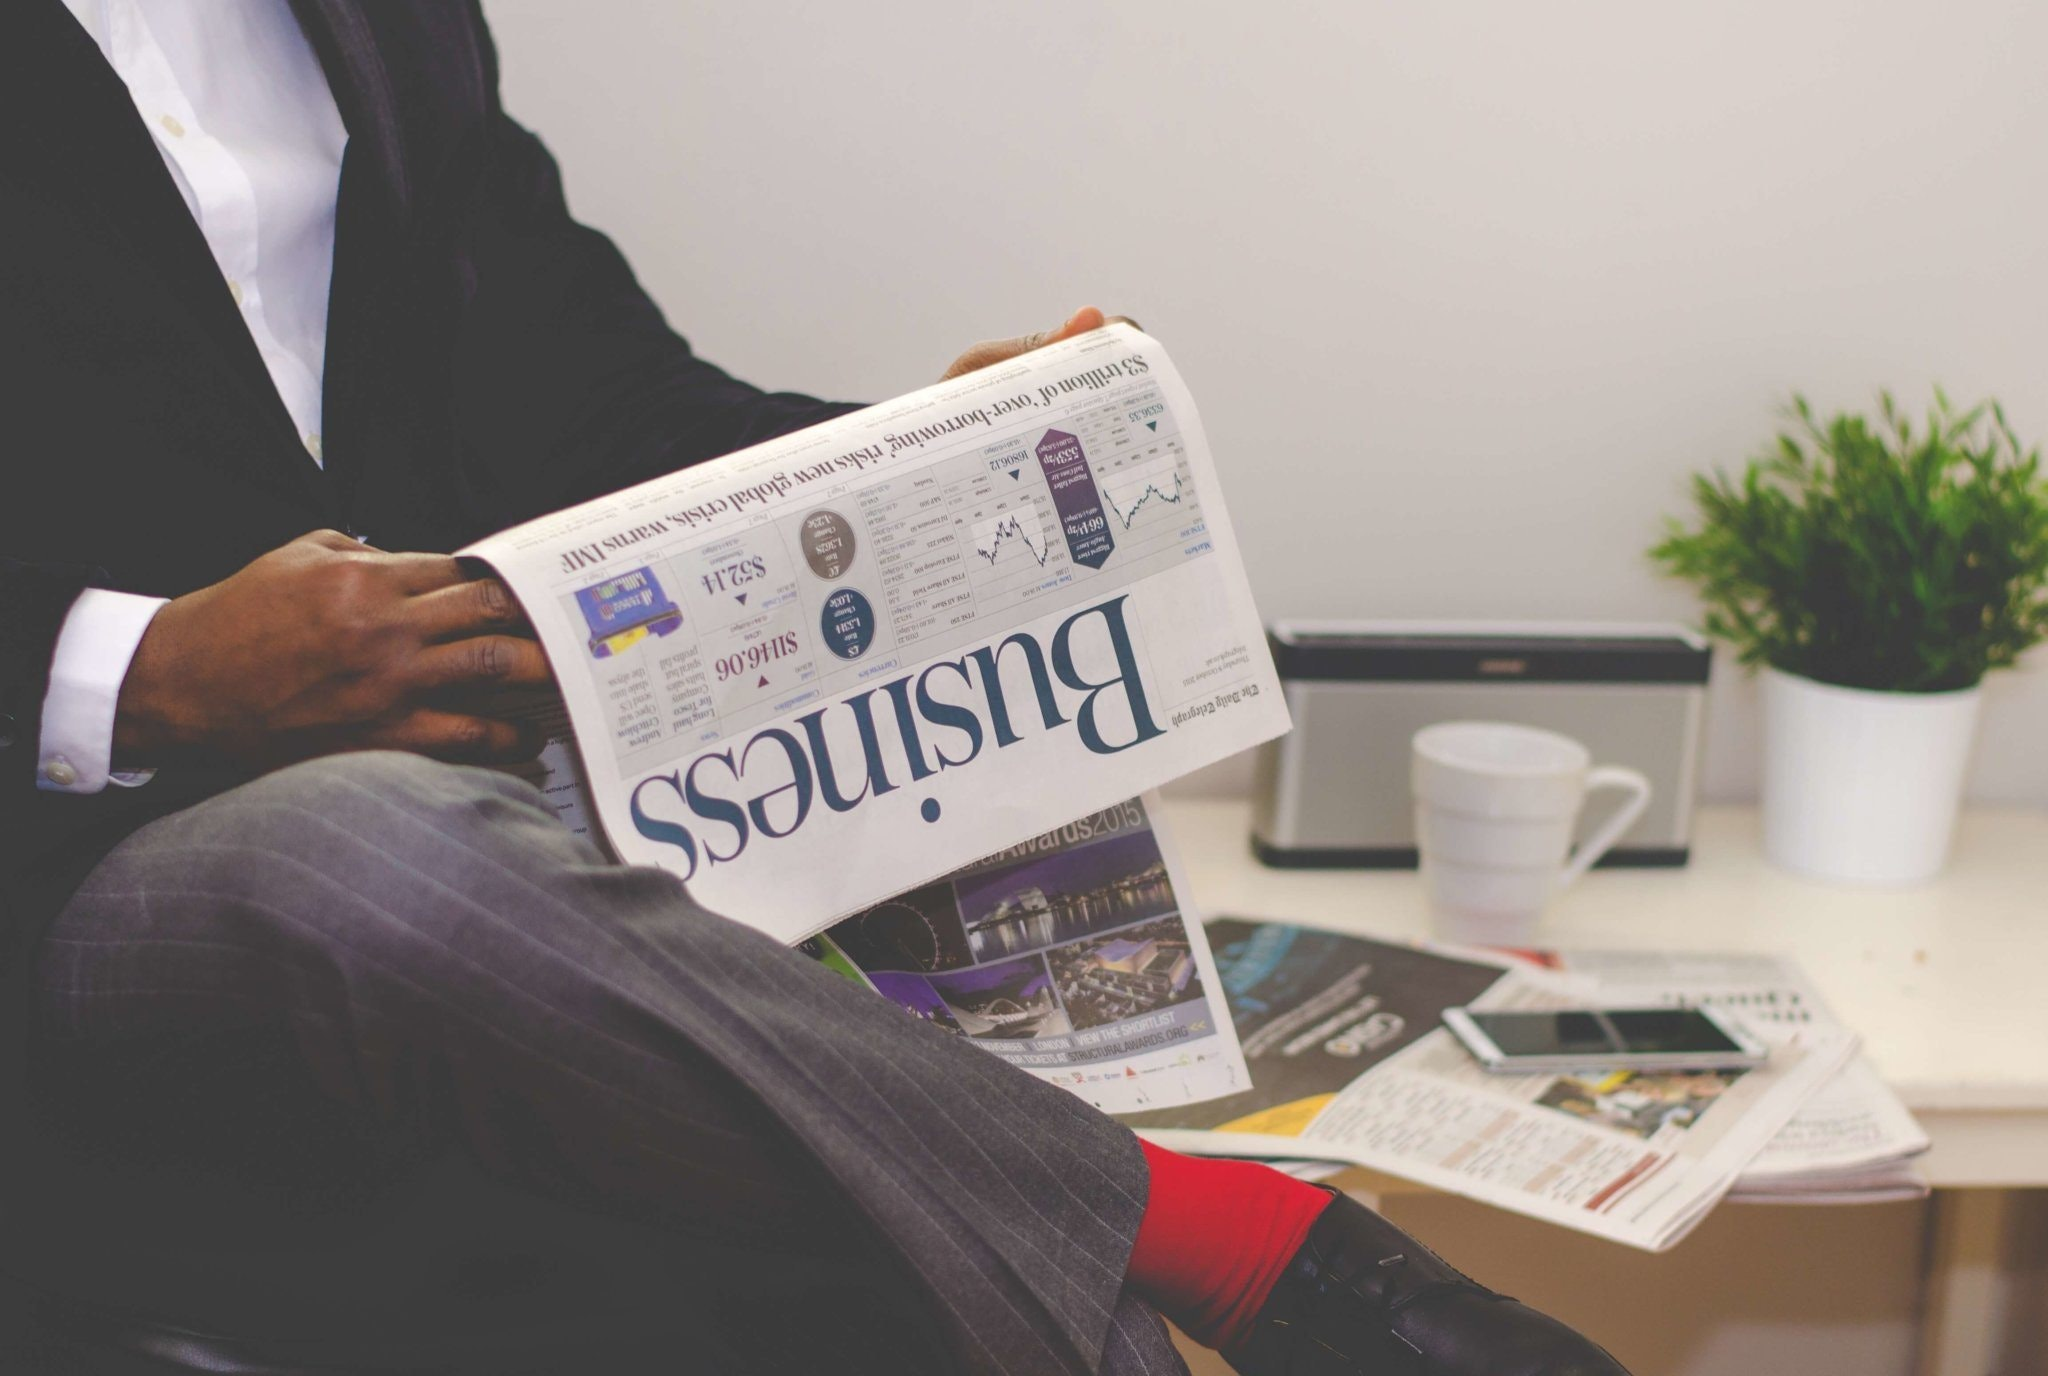 Music Journalism and Publicity Panel: Newsworthy Tips for Artists